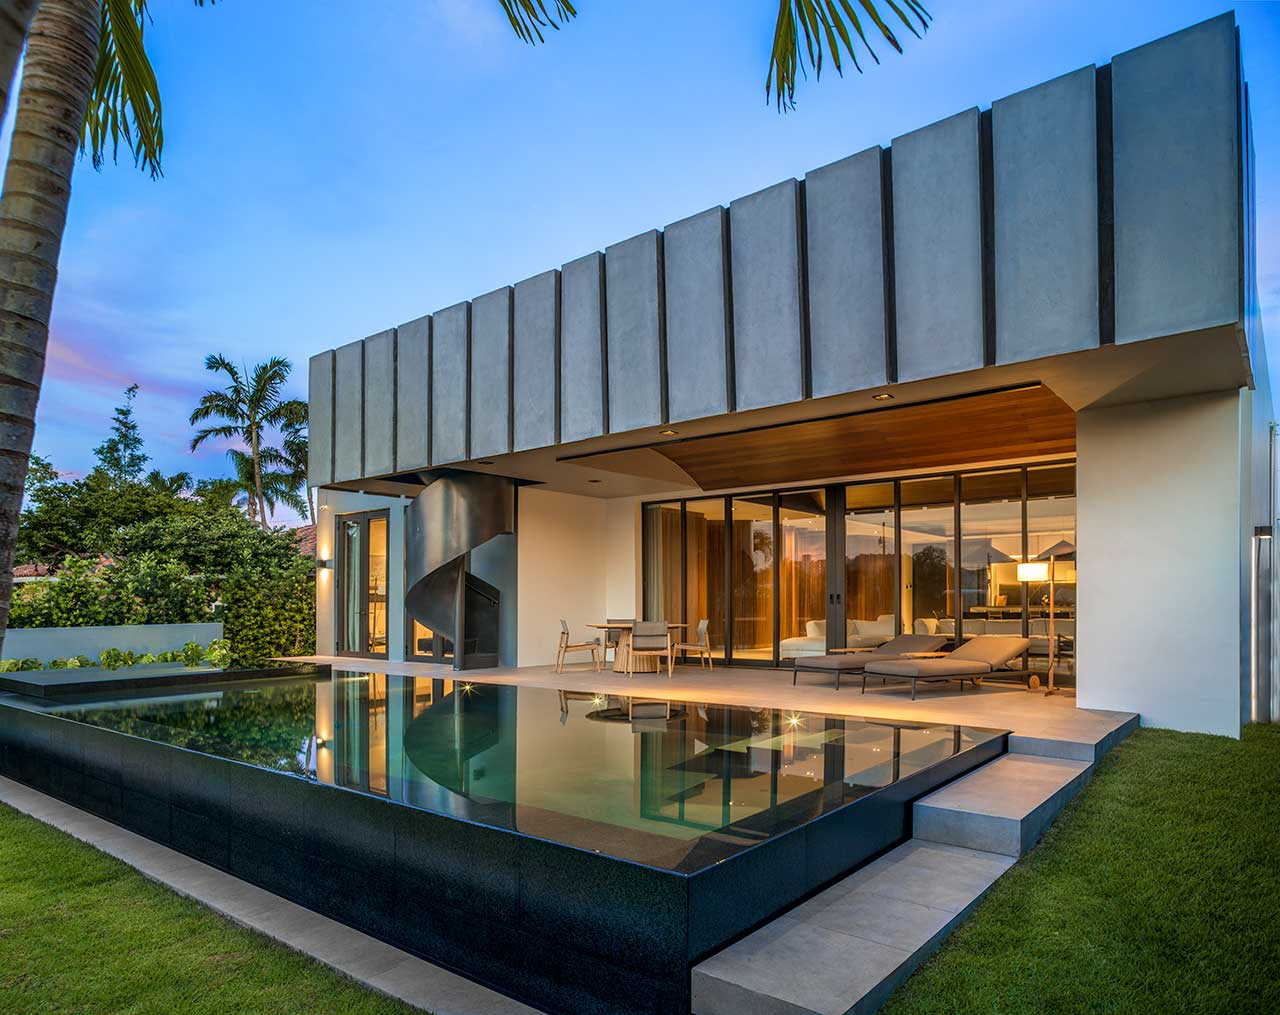 A Miami Beach Villa Designed From the Inside Out